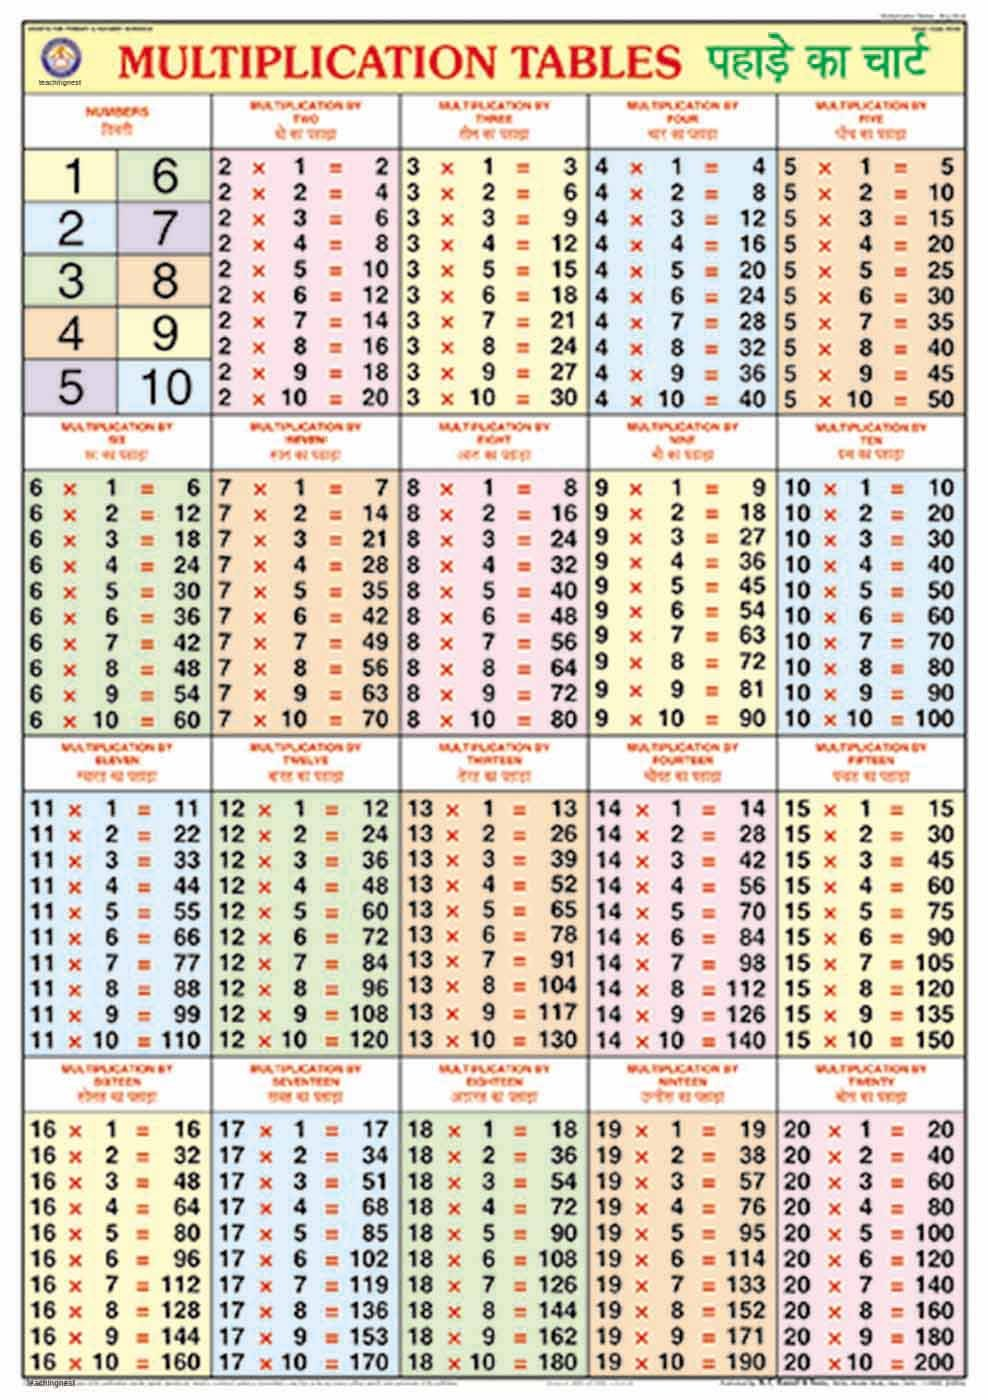 Buy multiplication table chart 70x100cm book online at low buy multiplication table chart 70x100cm book online at low prices in india multiplication table chart 70x100cm reviews ratings amazon nvjuhfo Gallery